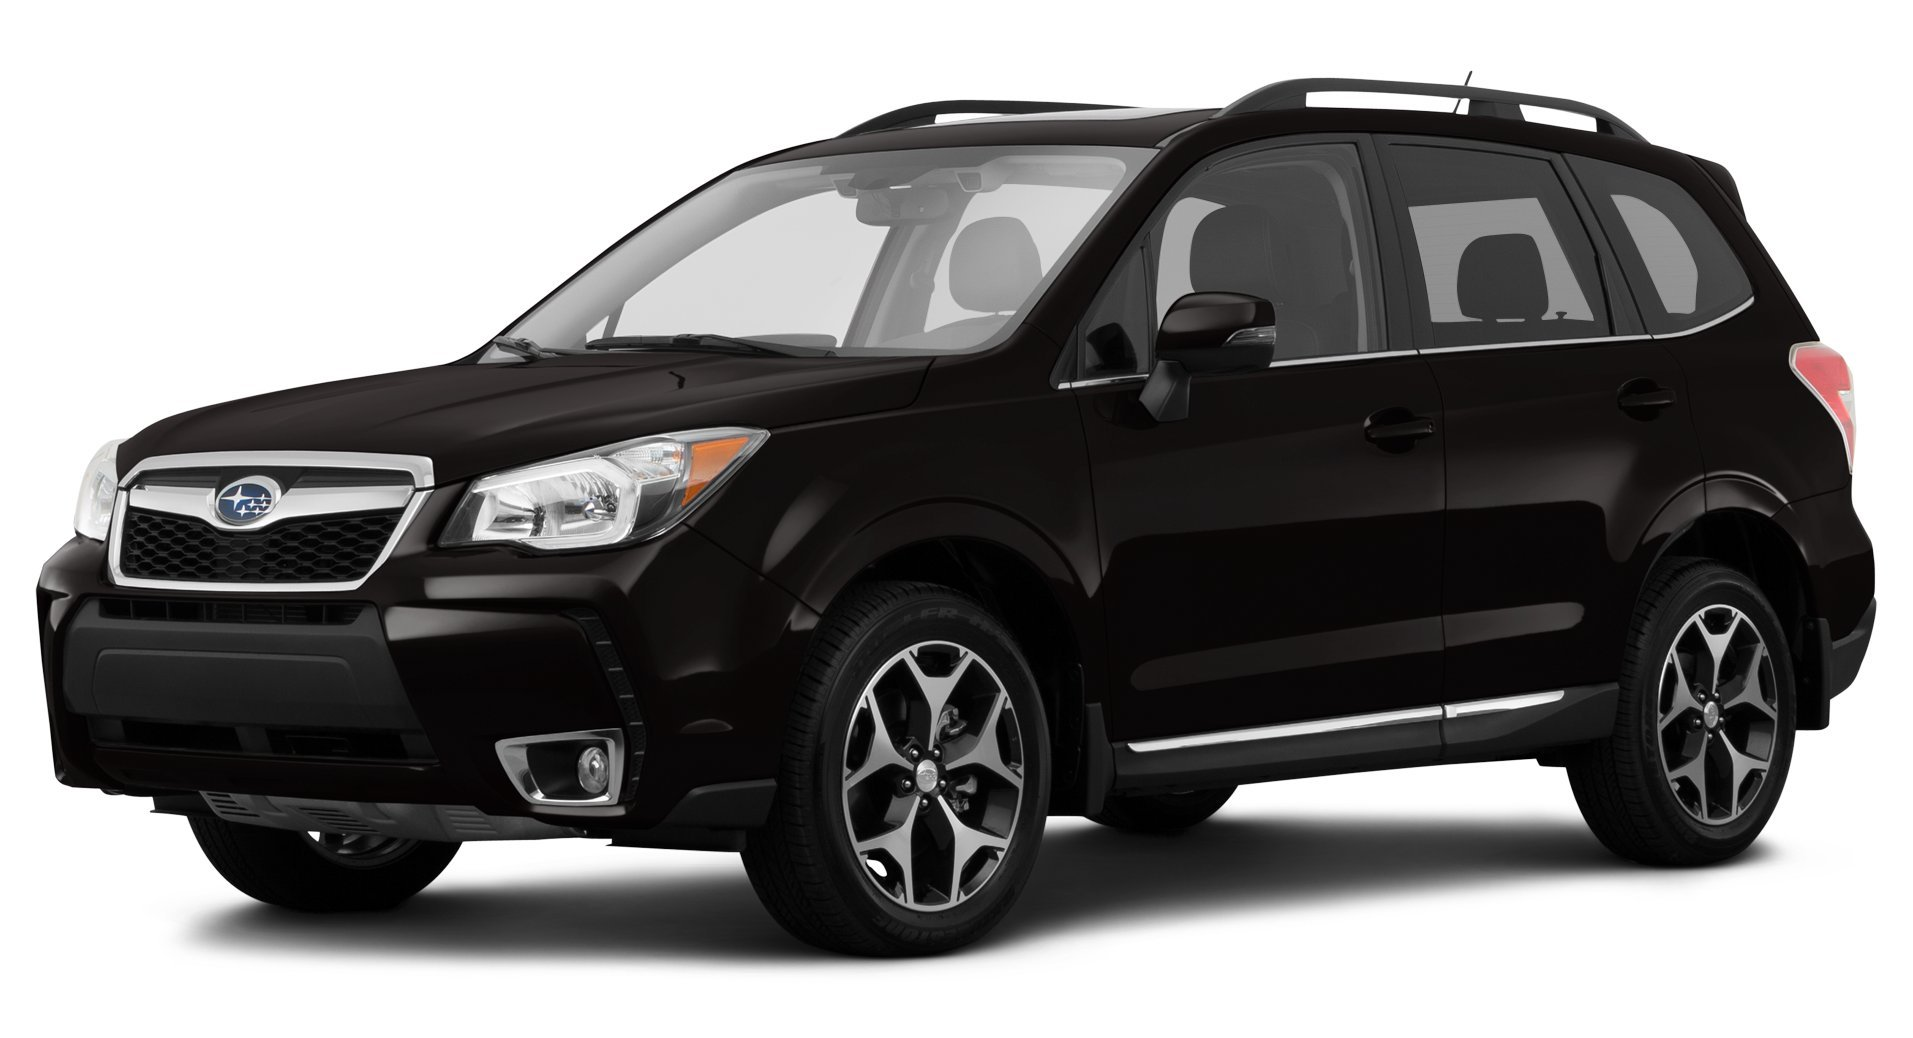 2015 subaru forester reviews images and. Black Bedroom Furniture Sets. Home Design Ideas